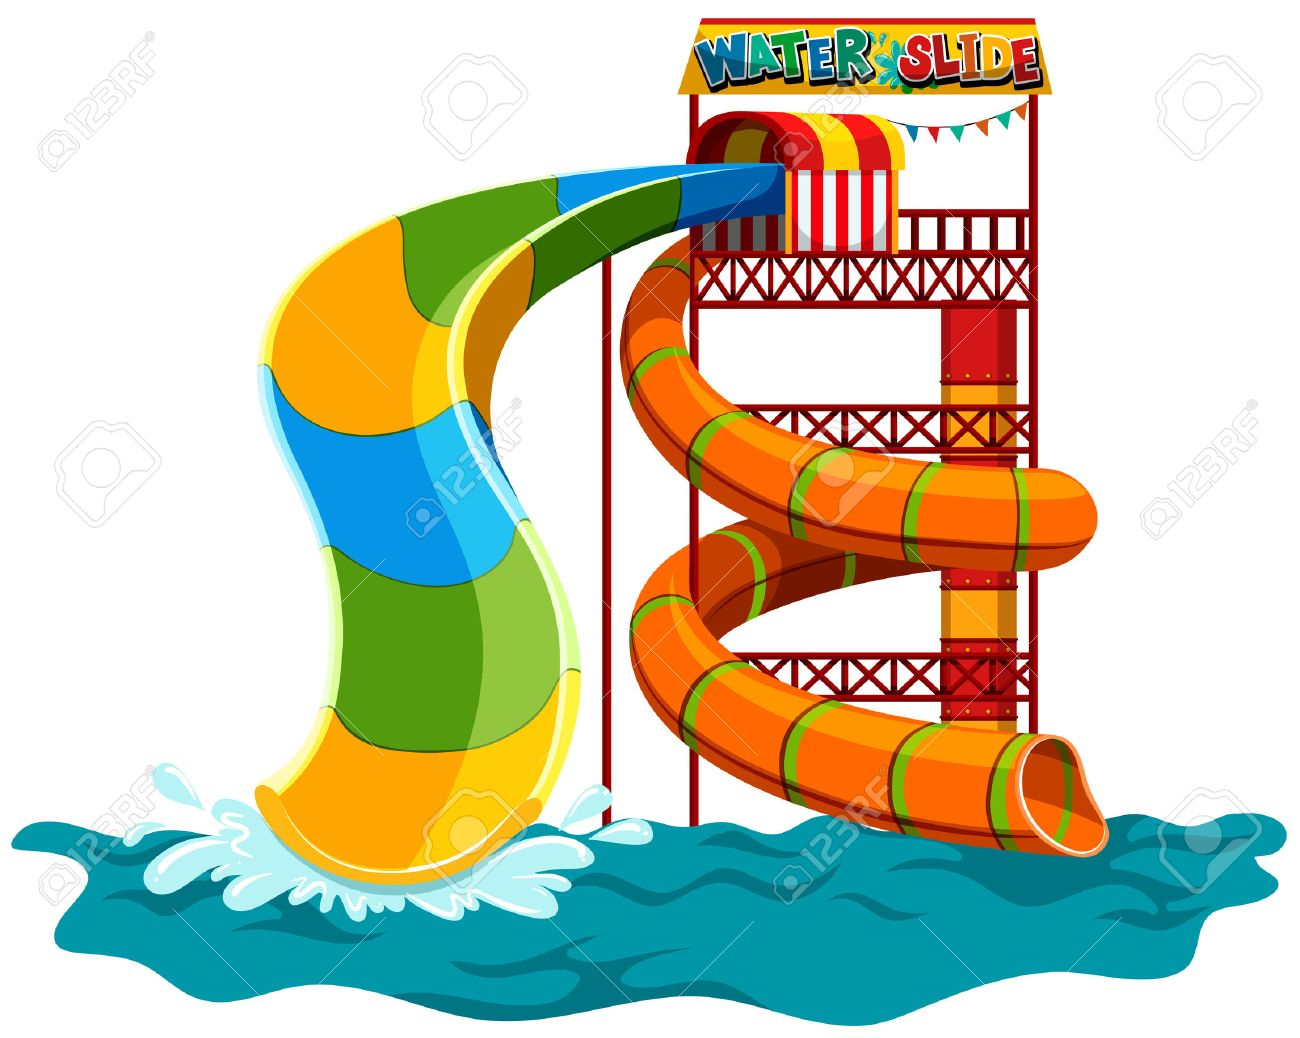 water slide at the park illustration royalty free cliparts vectors rh 123rf com free water slide clipart free water slide clipart